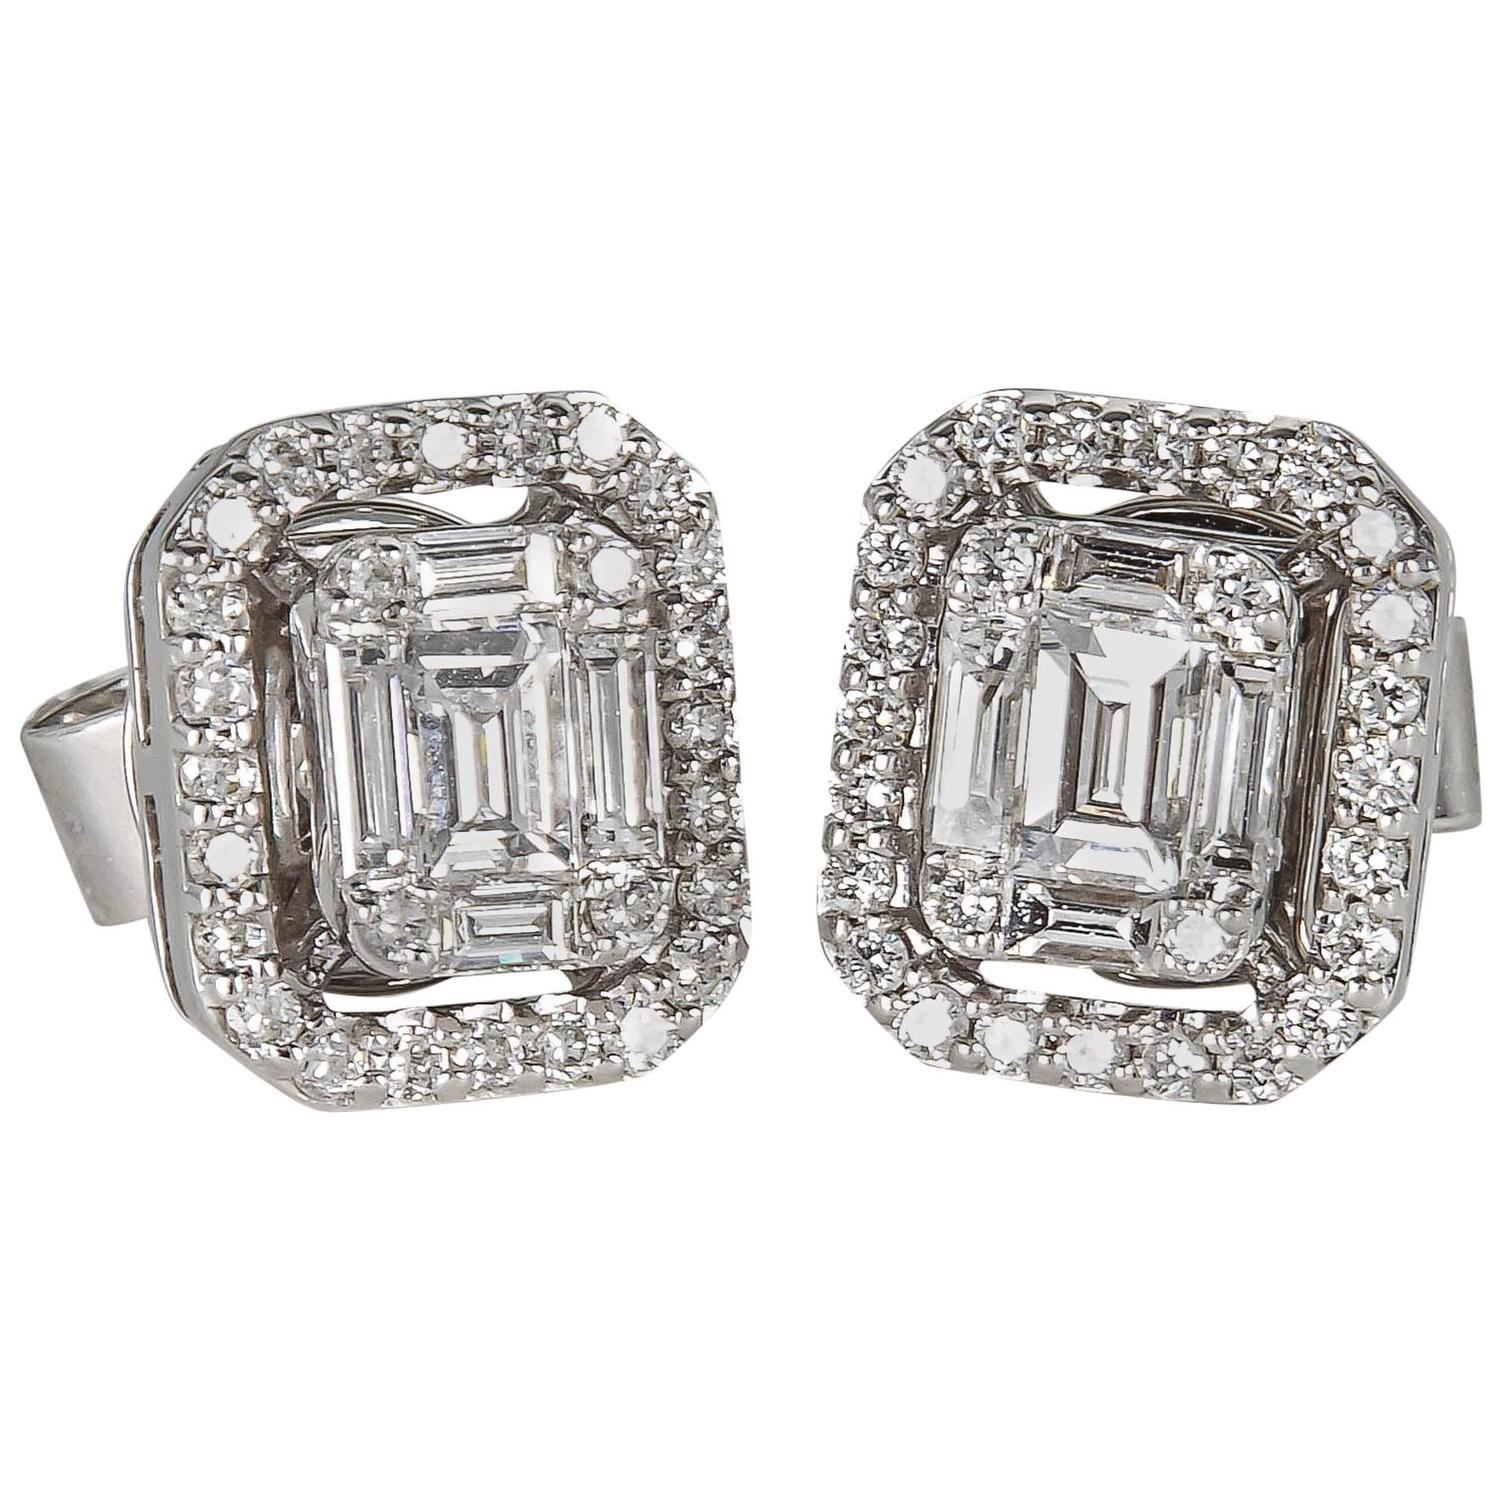 square silver tw carat diamond earrings walmart cut t sterling miabella ip en w solitaire canada princess stud